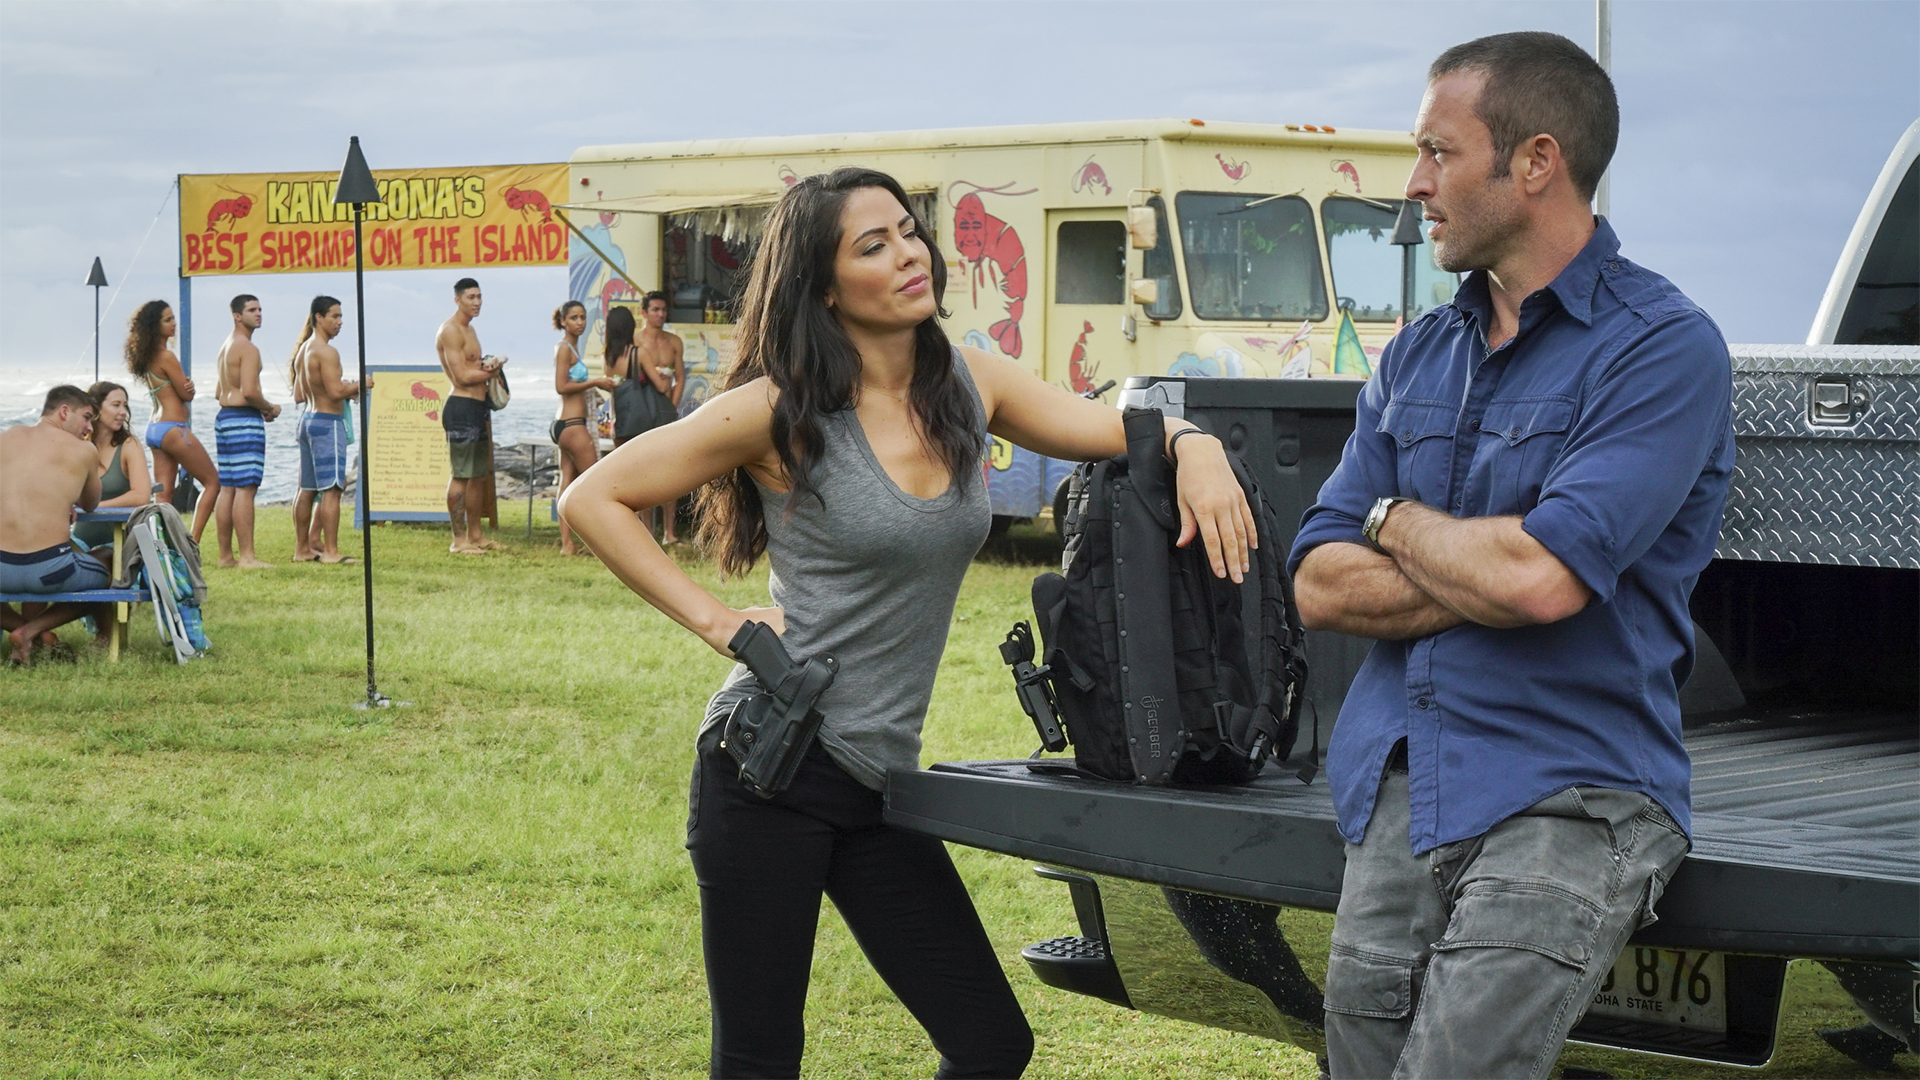 hawaii 5-0 saison 1 episode 22 vostfr